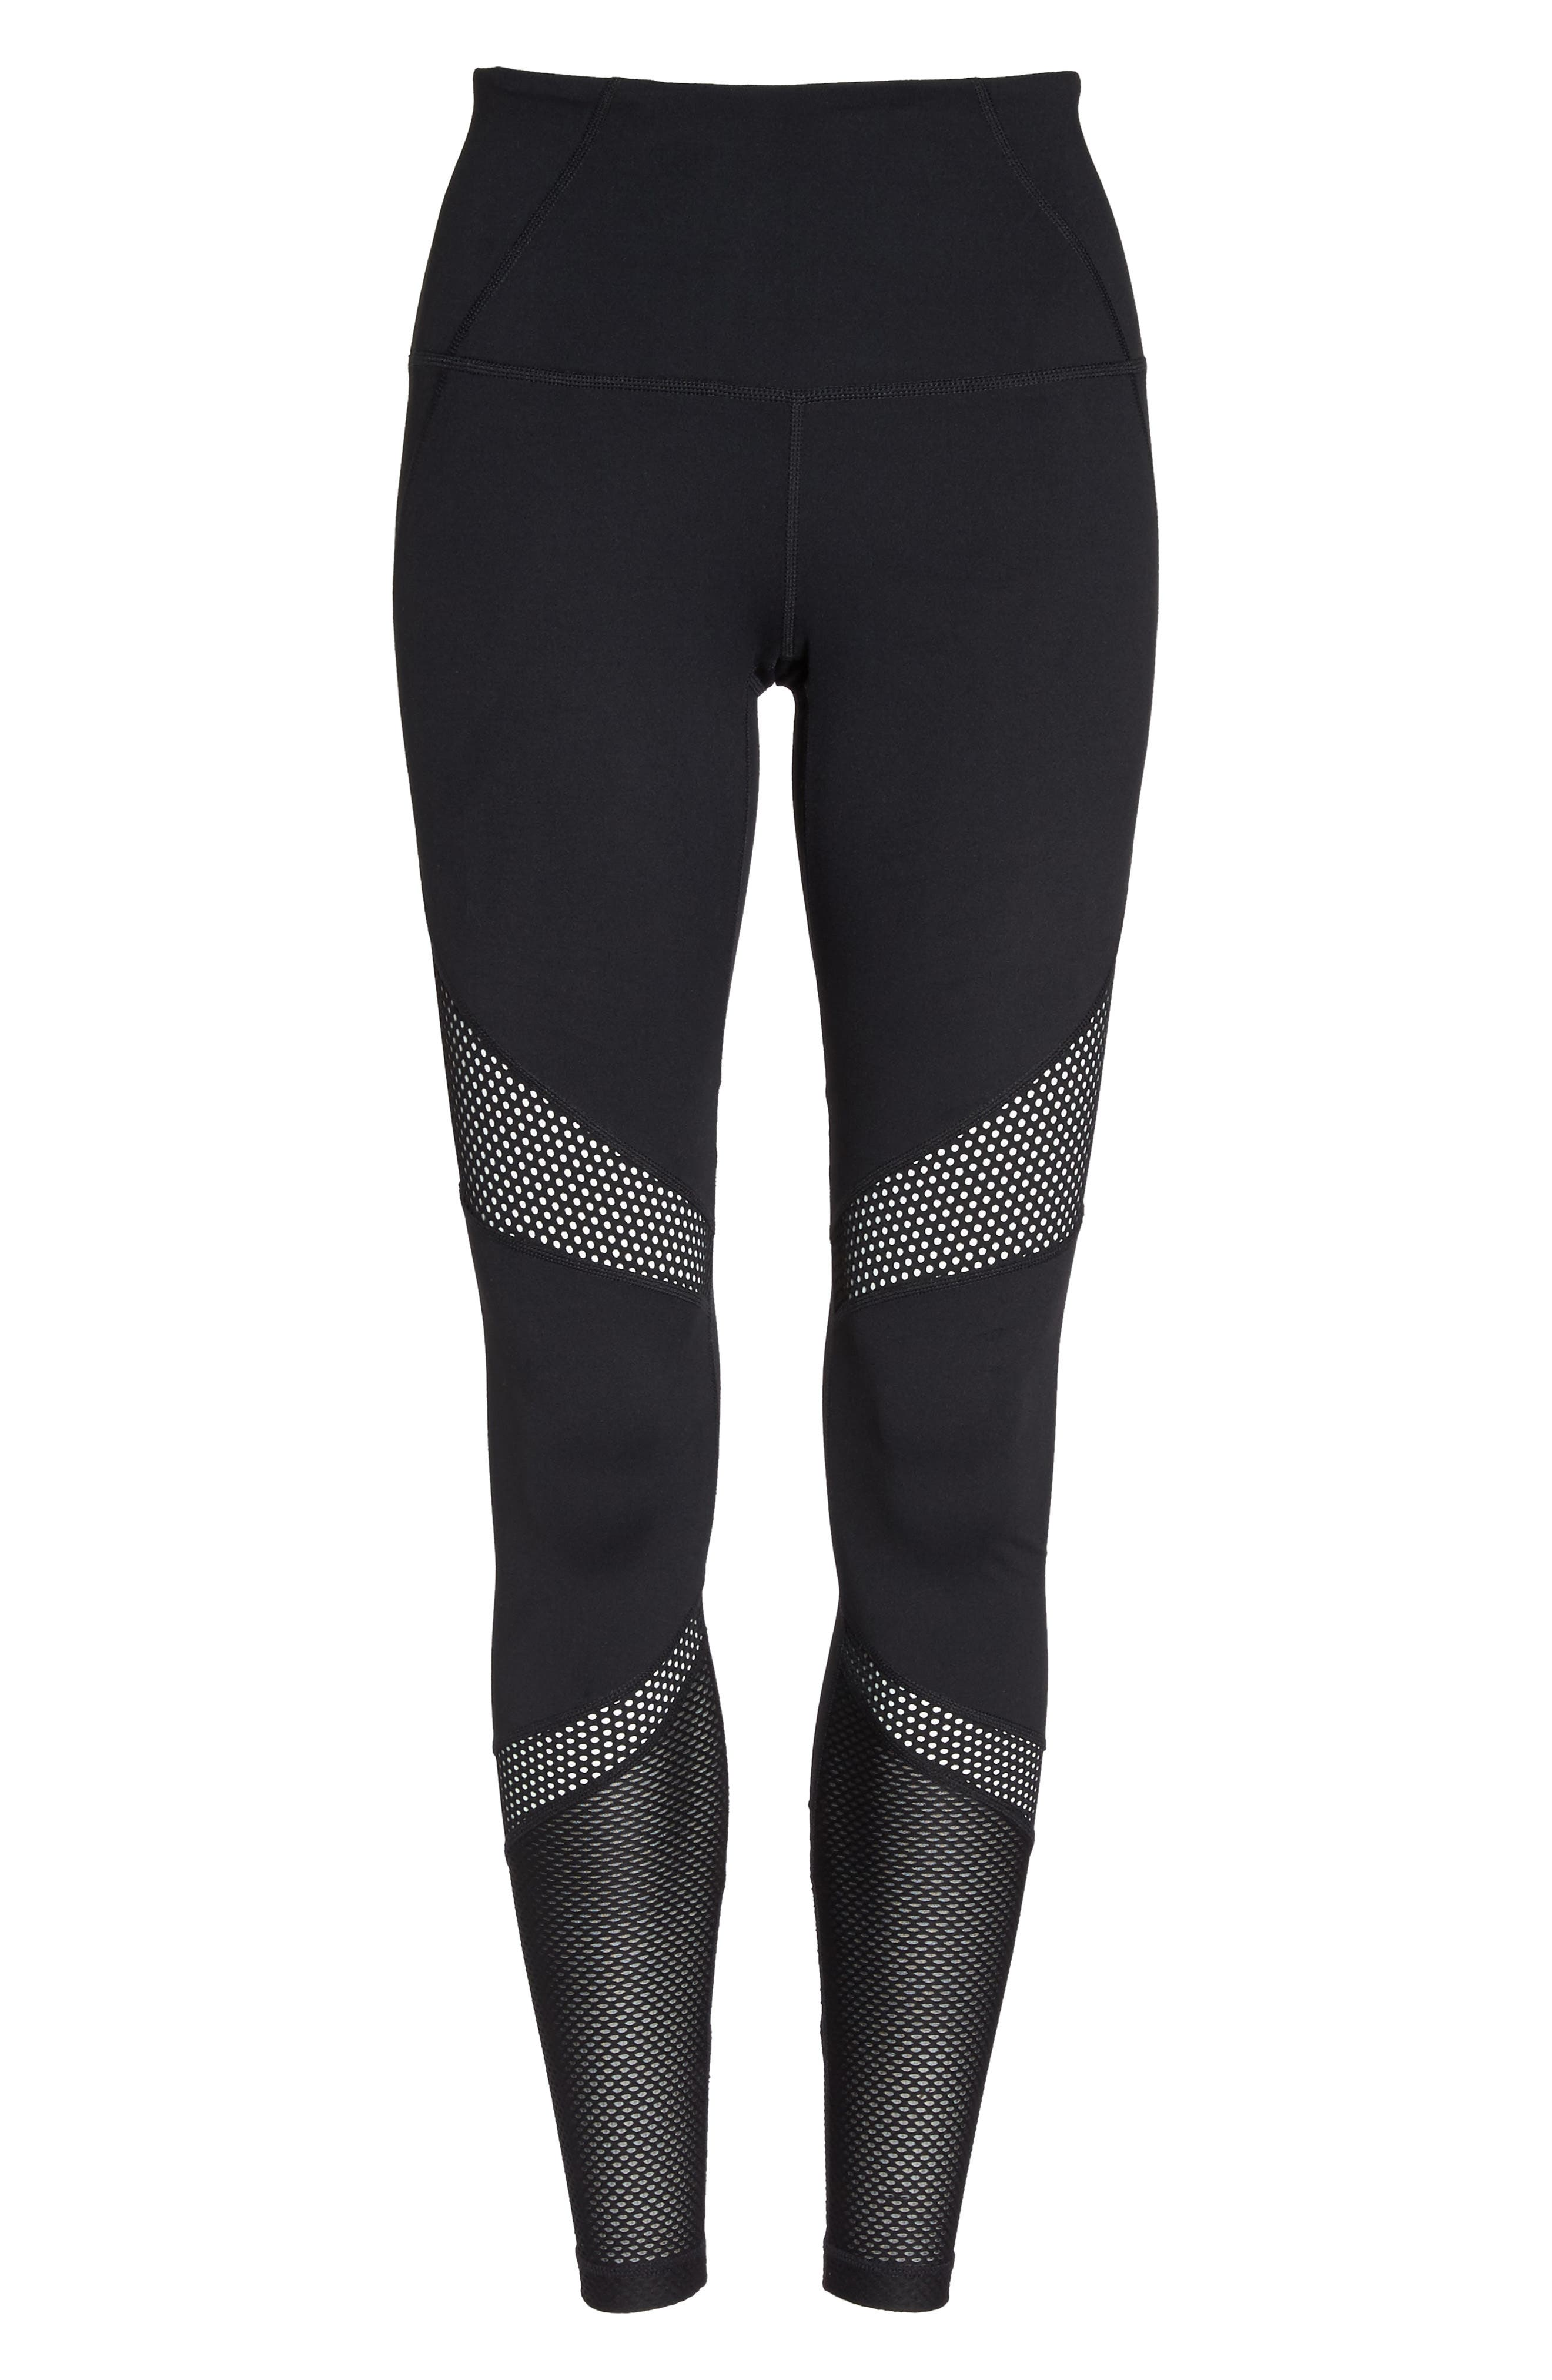 Out of Bounds High Waist Leggings,                             Alternate thumbnail 7, color,                             001